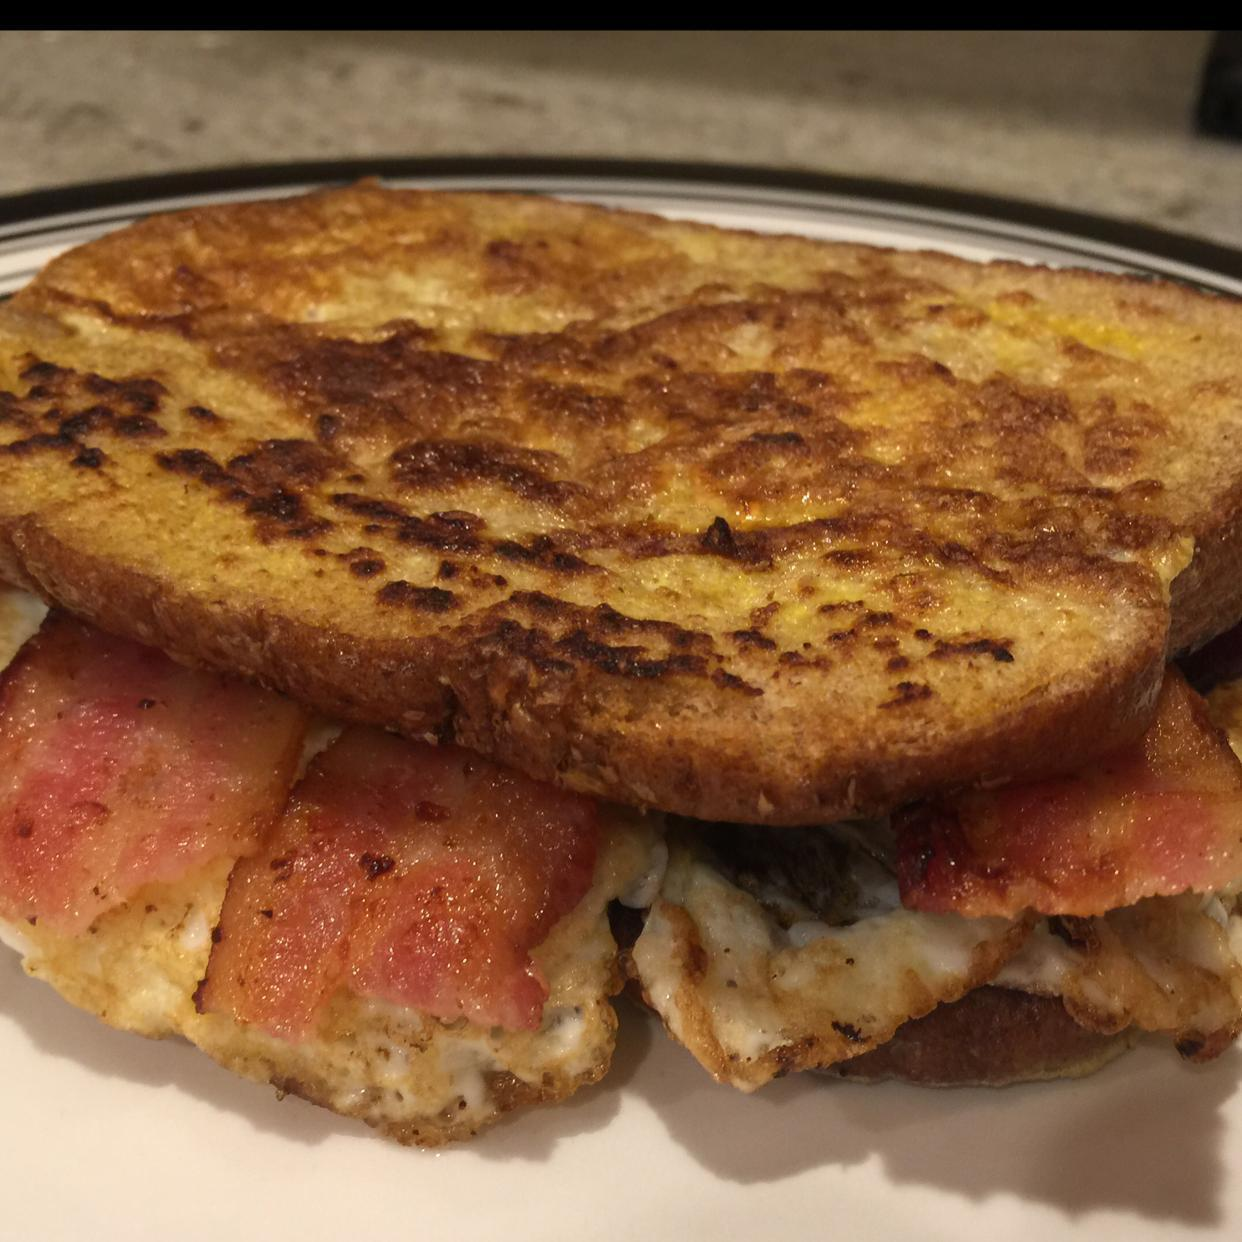 French Egg and Bacon Sandwich Healthy Recipe